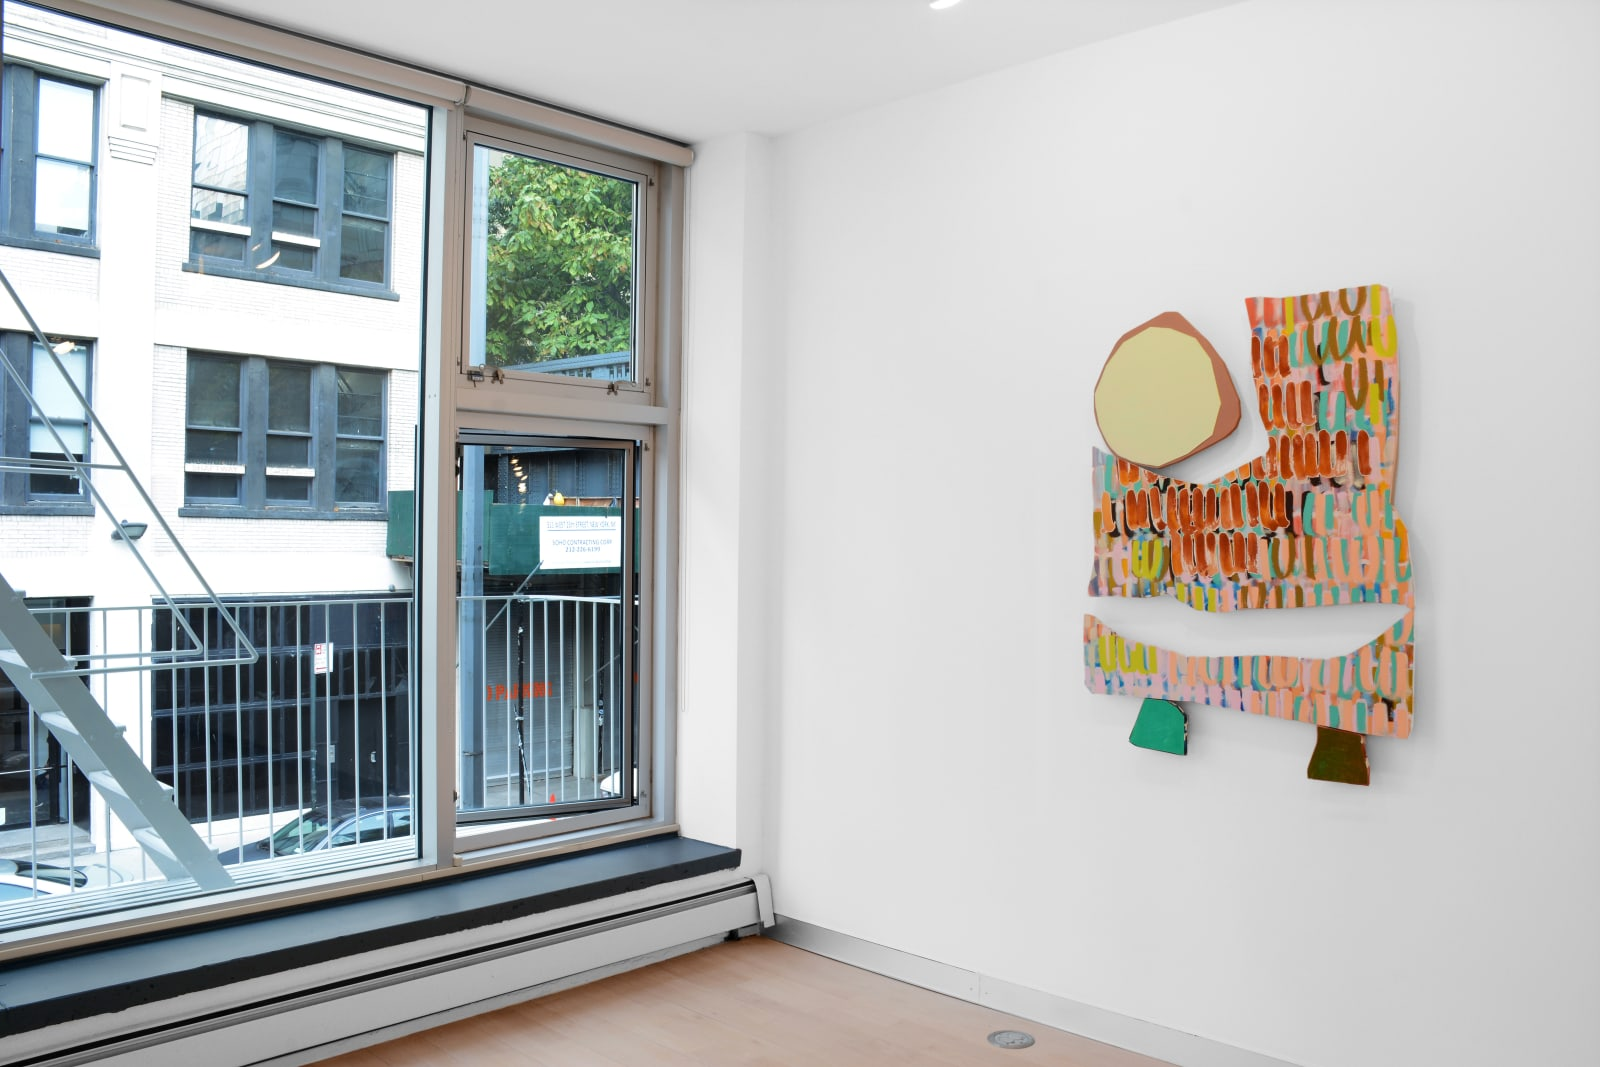 Hollis Taggart Contemporary, 514 West 25th Street, 2nd Floor, New York, NY (2019)